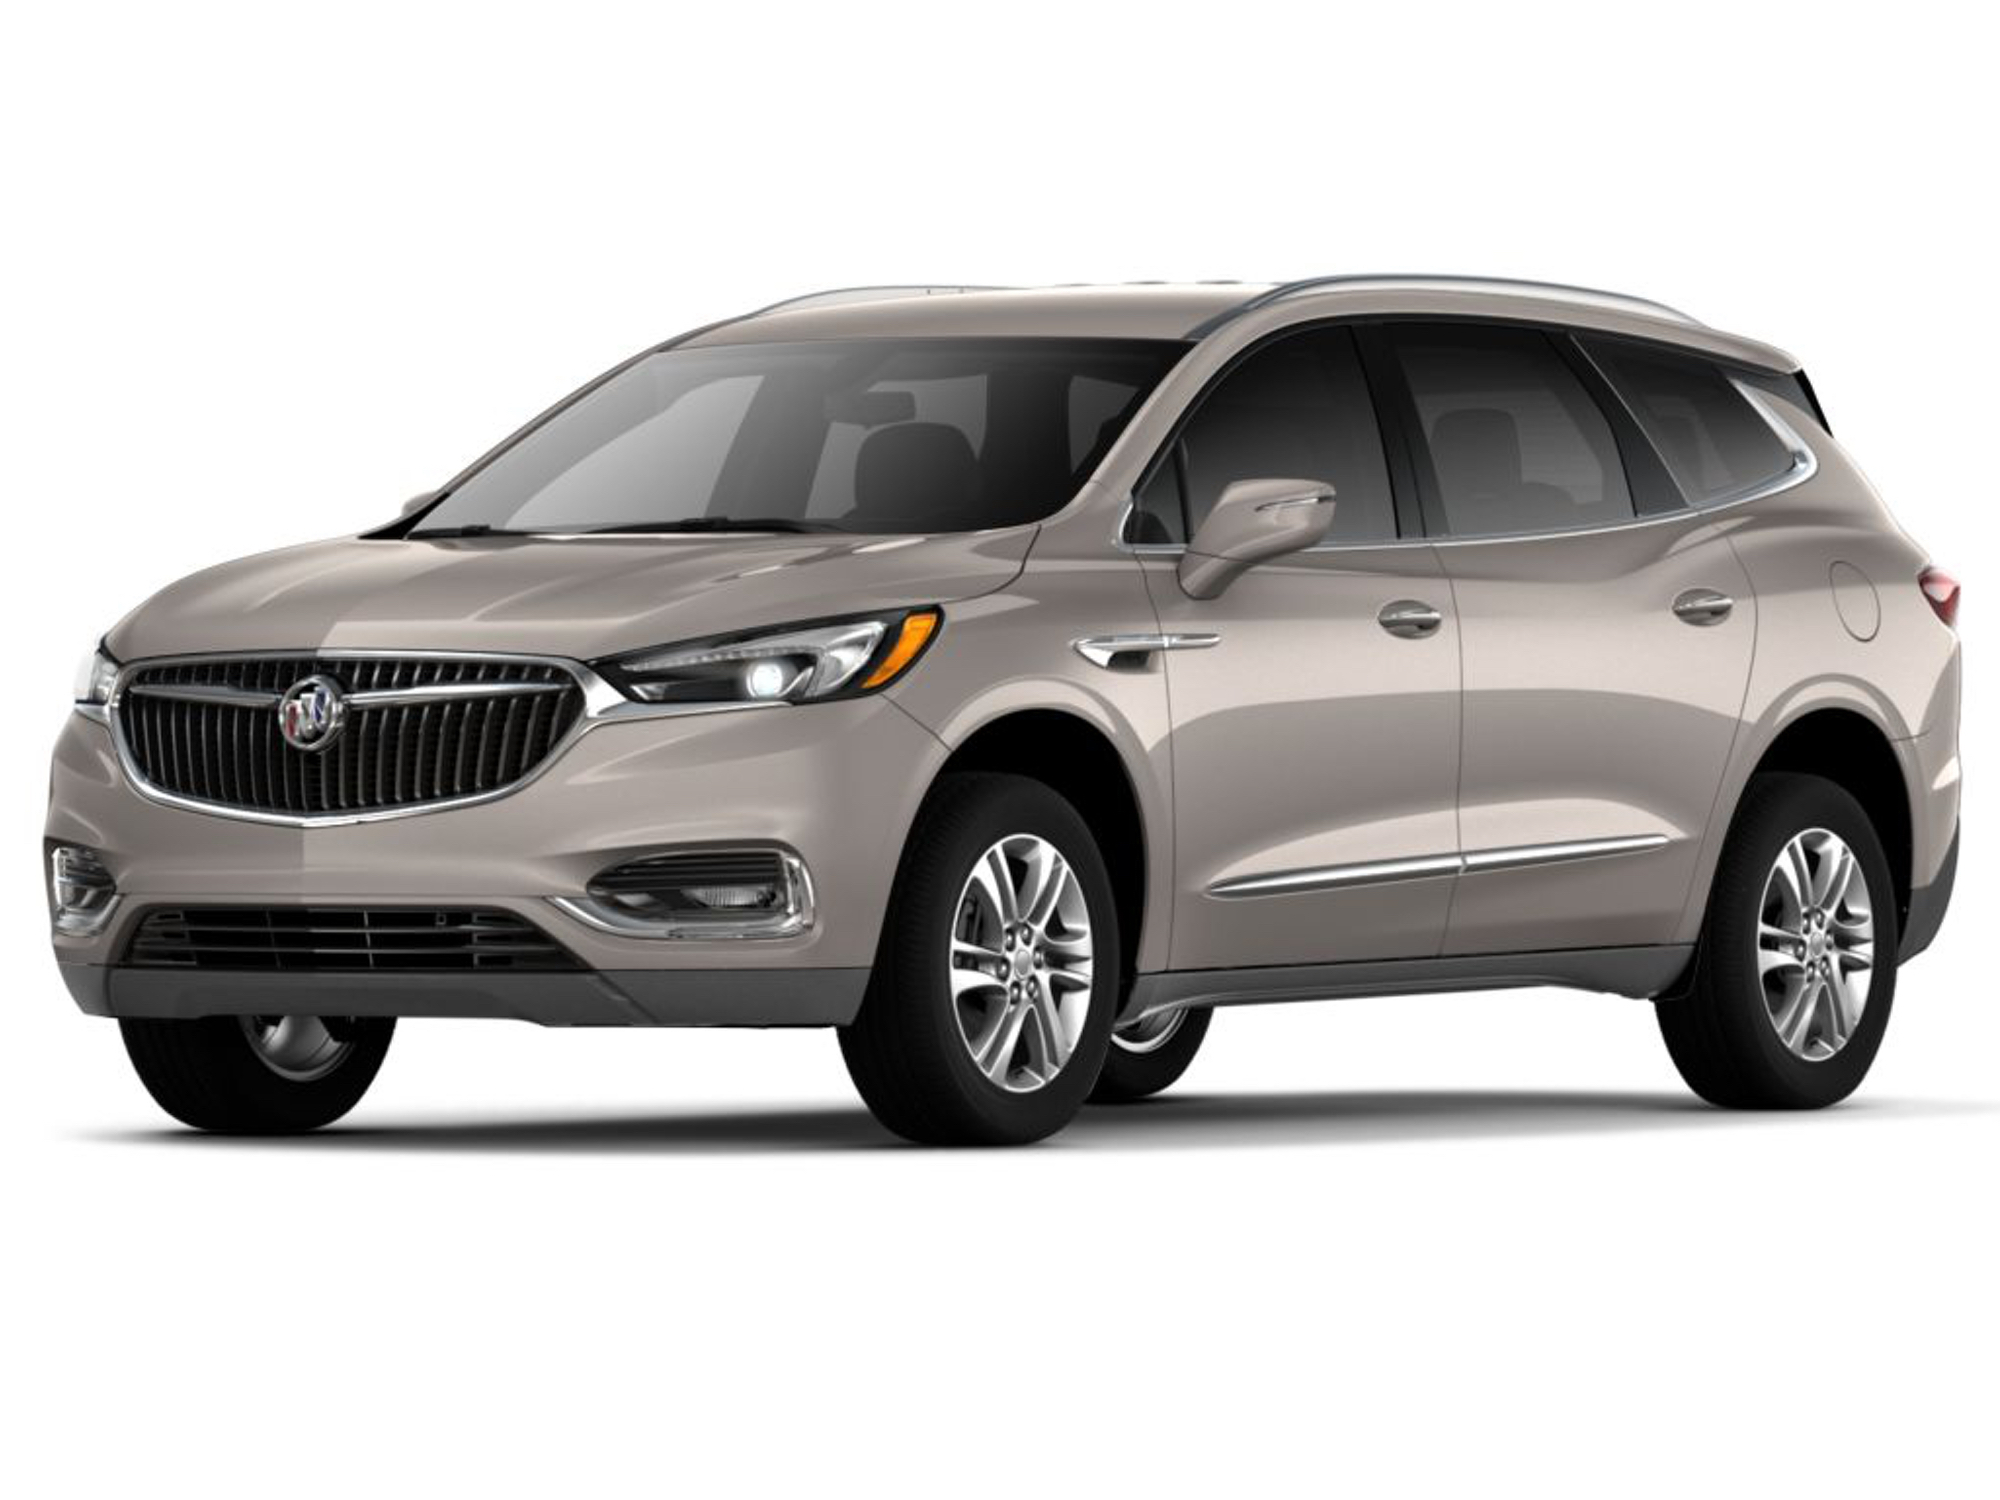 2019 Buick Enclave Exterior Colors | Gm Authority 2022 Buick Enclave Avenir Release Date, Features, Colors